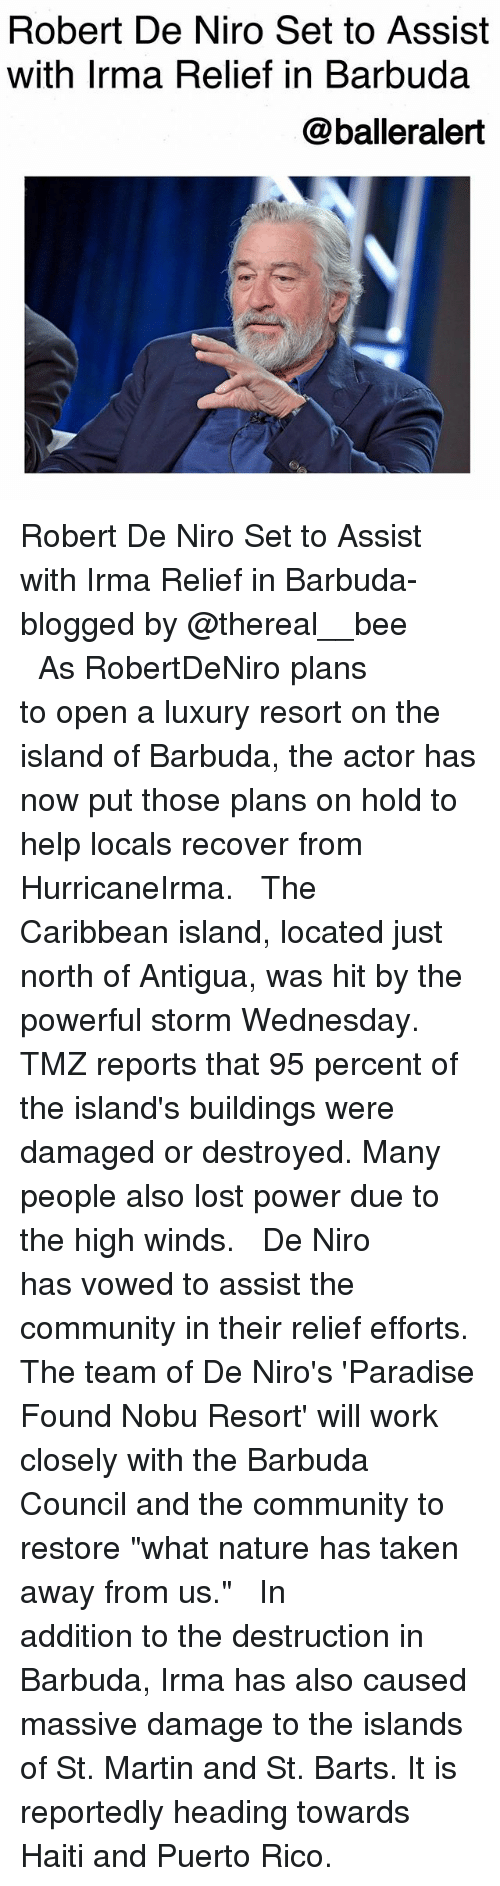 """Community, Martin, and Memes: Robert De Niro Set to Assist  with Irma Relief in Barbuda  @balleralert Robert De Niro Set to Assist with Irma Relief in Barbuda-blogged by @thereal__bee ⠀⠀⠀⠀⠀⠀⠀⠀⠀ ⠀⠀ As RobertDeNiro plans to open a luxury resort on the island of Barbuda, the actor has now put those plans on hold to help locals recover from HurricaneIrma. ⠀⠀⠀⠀⠀⠀⠀⠀⠀ ⠀⠀ The Caribbean island, located just north of Antigua, was hit by the powerful storm Wednesday. TMZ reports that 95 percent of the island's buildings were damaged or destroyed. Many people also lost power due to the high winds. ⠀⠀⠀⠀⠀⠀⠀⠀⠀ ⠀⠀ De Niro has vowed to assist the community in their relief efforts. The team of De Niro's 'Paradise Found Nobu Resort' will work closely with the Barbuda Council and the community to restore """"what nature has taken away from us."""" ⠀⠀⠀⠀⠀⠀⠀⠀⠀ ⠀⠀ In addition to the destruction in Barbuda, Irma has also caused massive damage to the islands of St. Martin and St. Barts. It is reportedly heading towards Haiti and Puerto Rico."""